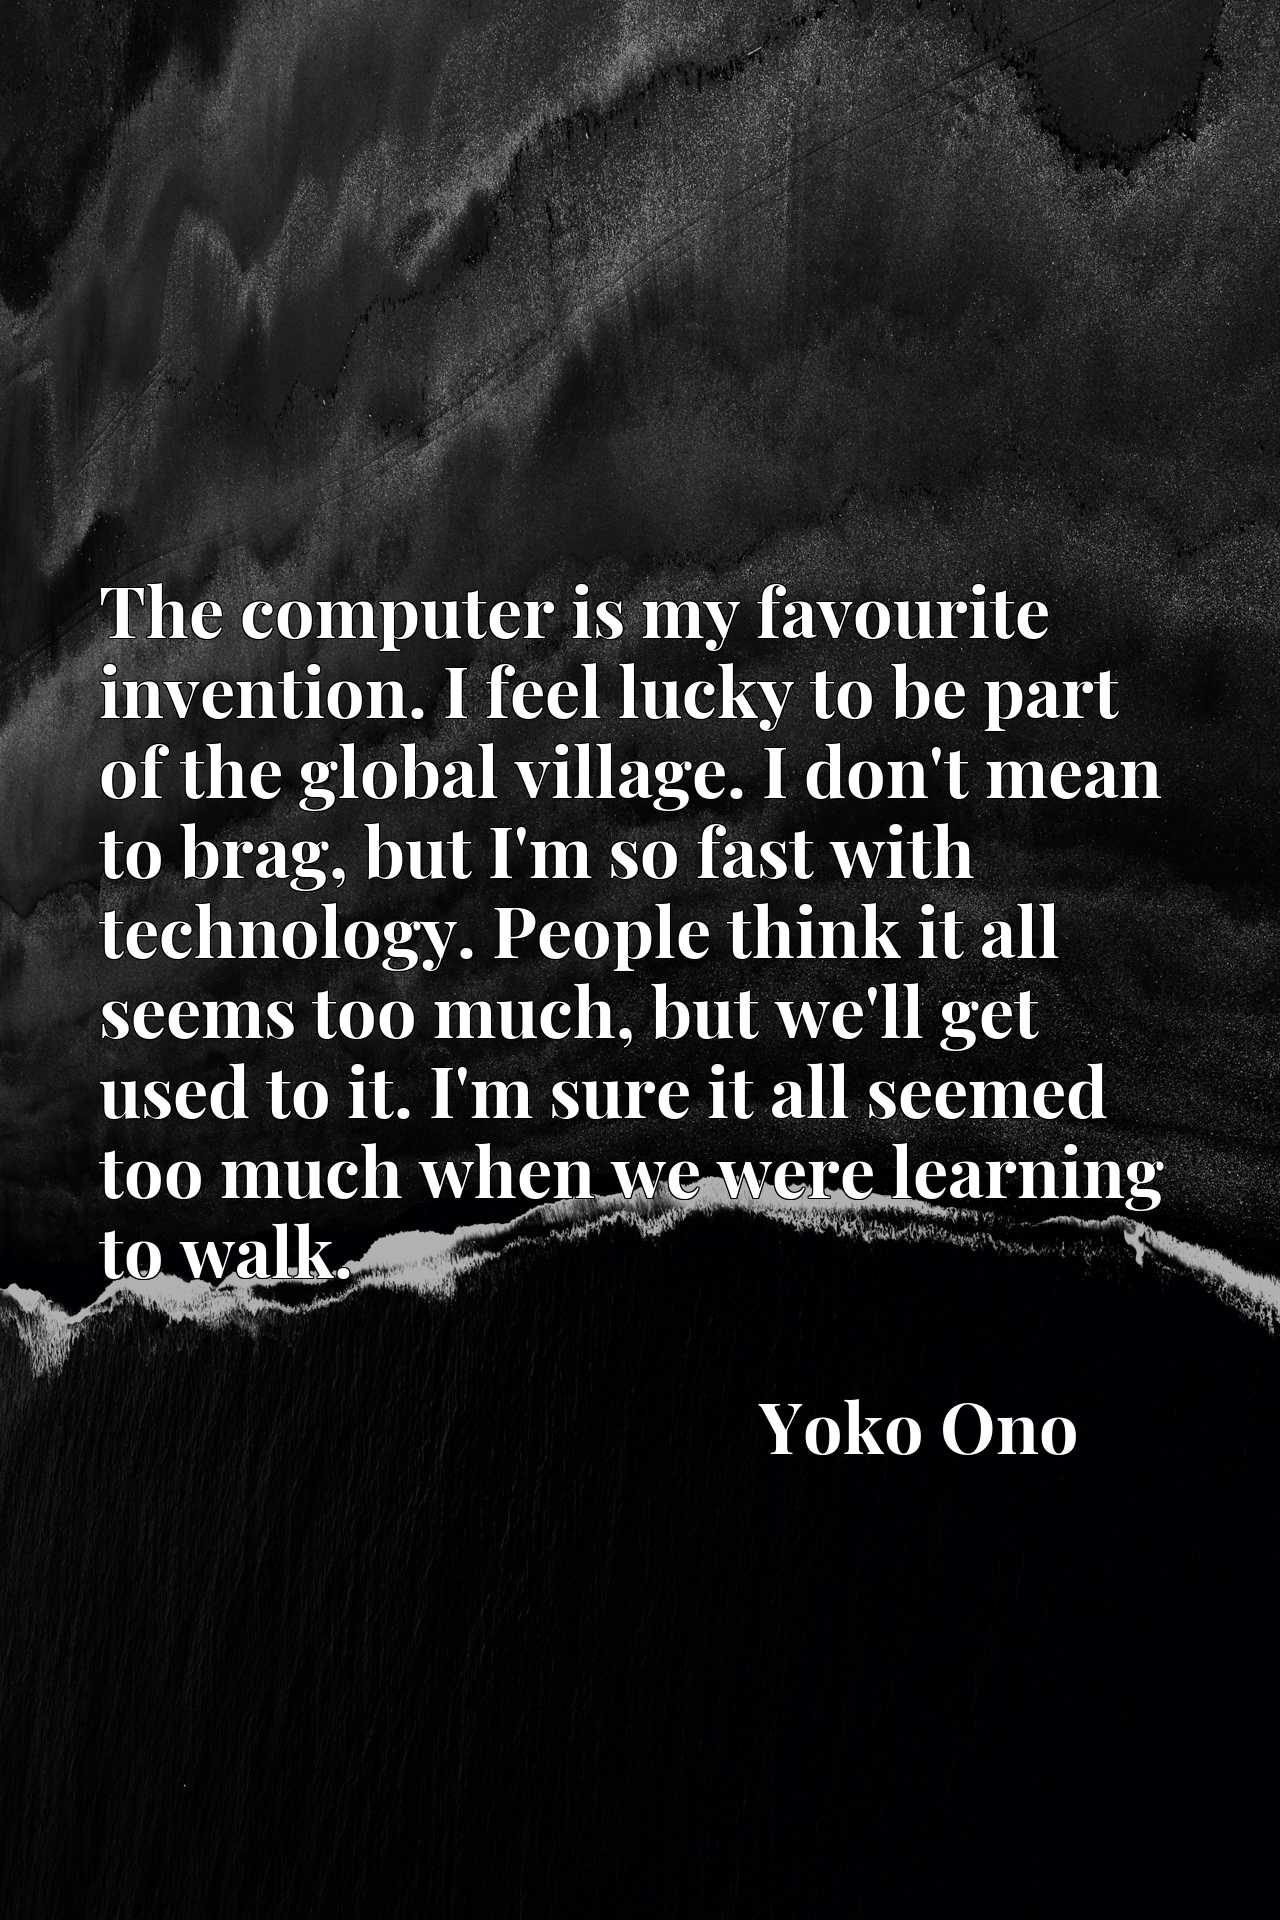 The computer is my favourite invention. I feel lucky to be part of the global village. I don't mean to brag, but I'm so fast with technology. People think it all seems too much, but we'll get used to it. I'm sure it all seemed too much when we were learning to walk.